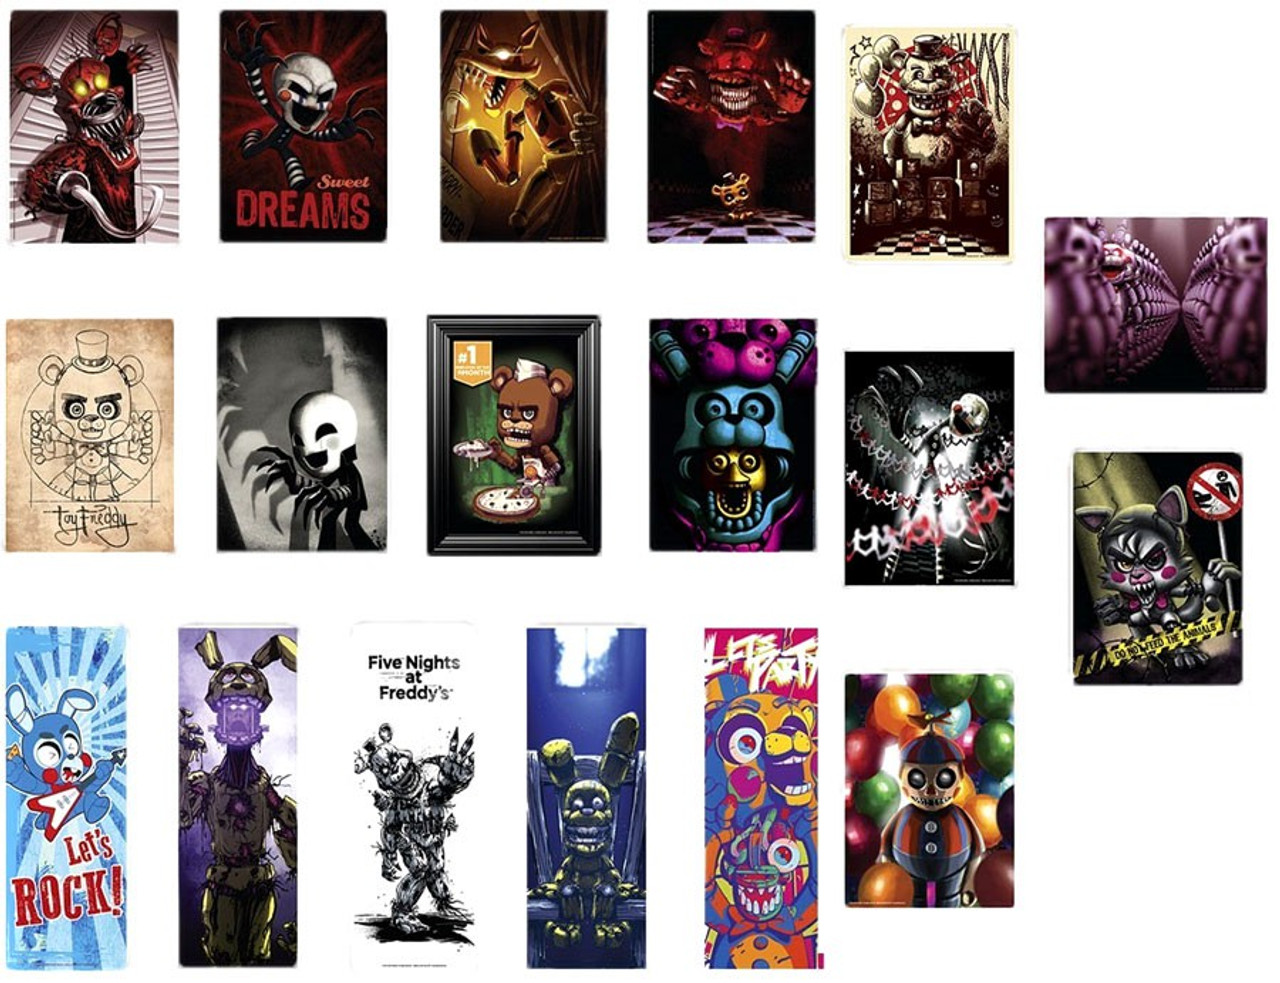 Five Nights at Freddys Five Nights at Freddys Mini-Poster Box Just